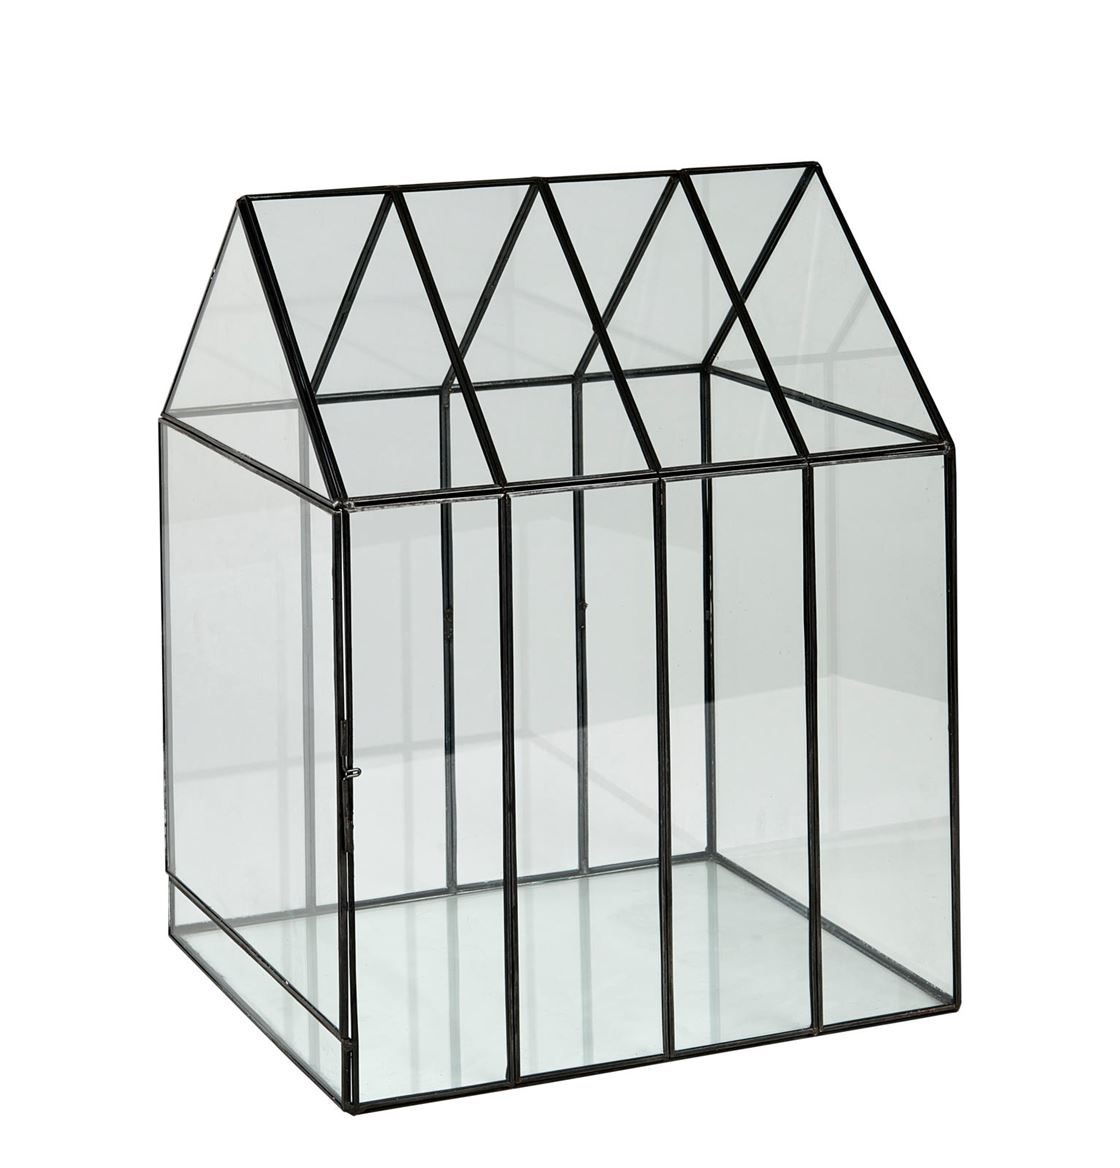 GREENHOUSE Serre transparent H 38 x Larg. 29,5 x P 25,5 cm_greenhouse-serre-transparent-h-38-x-larg--29,5-x-p-25,5-cm